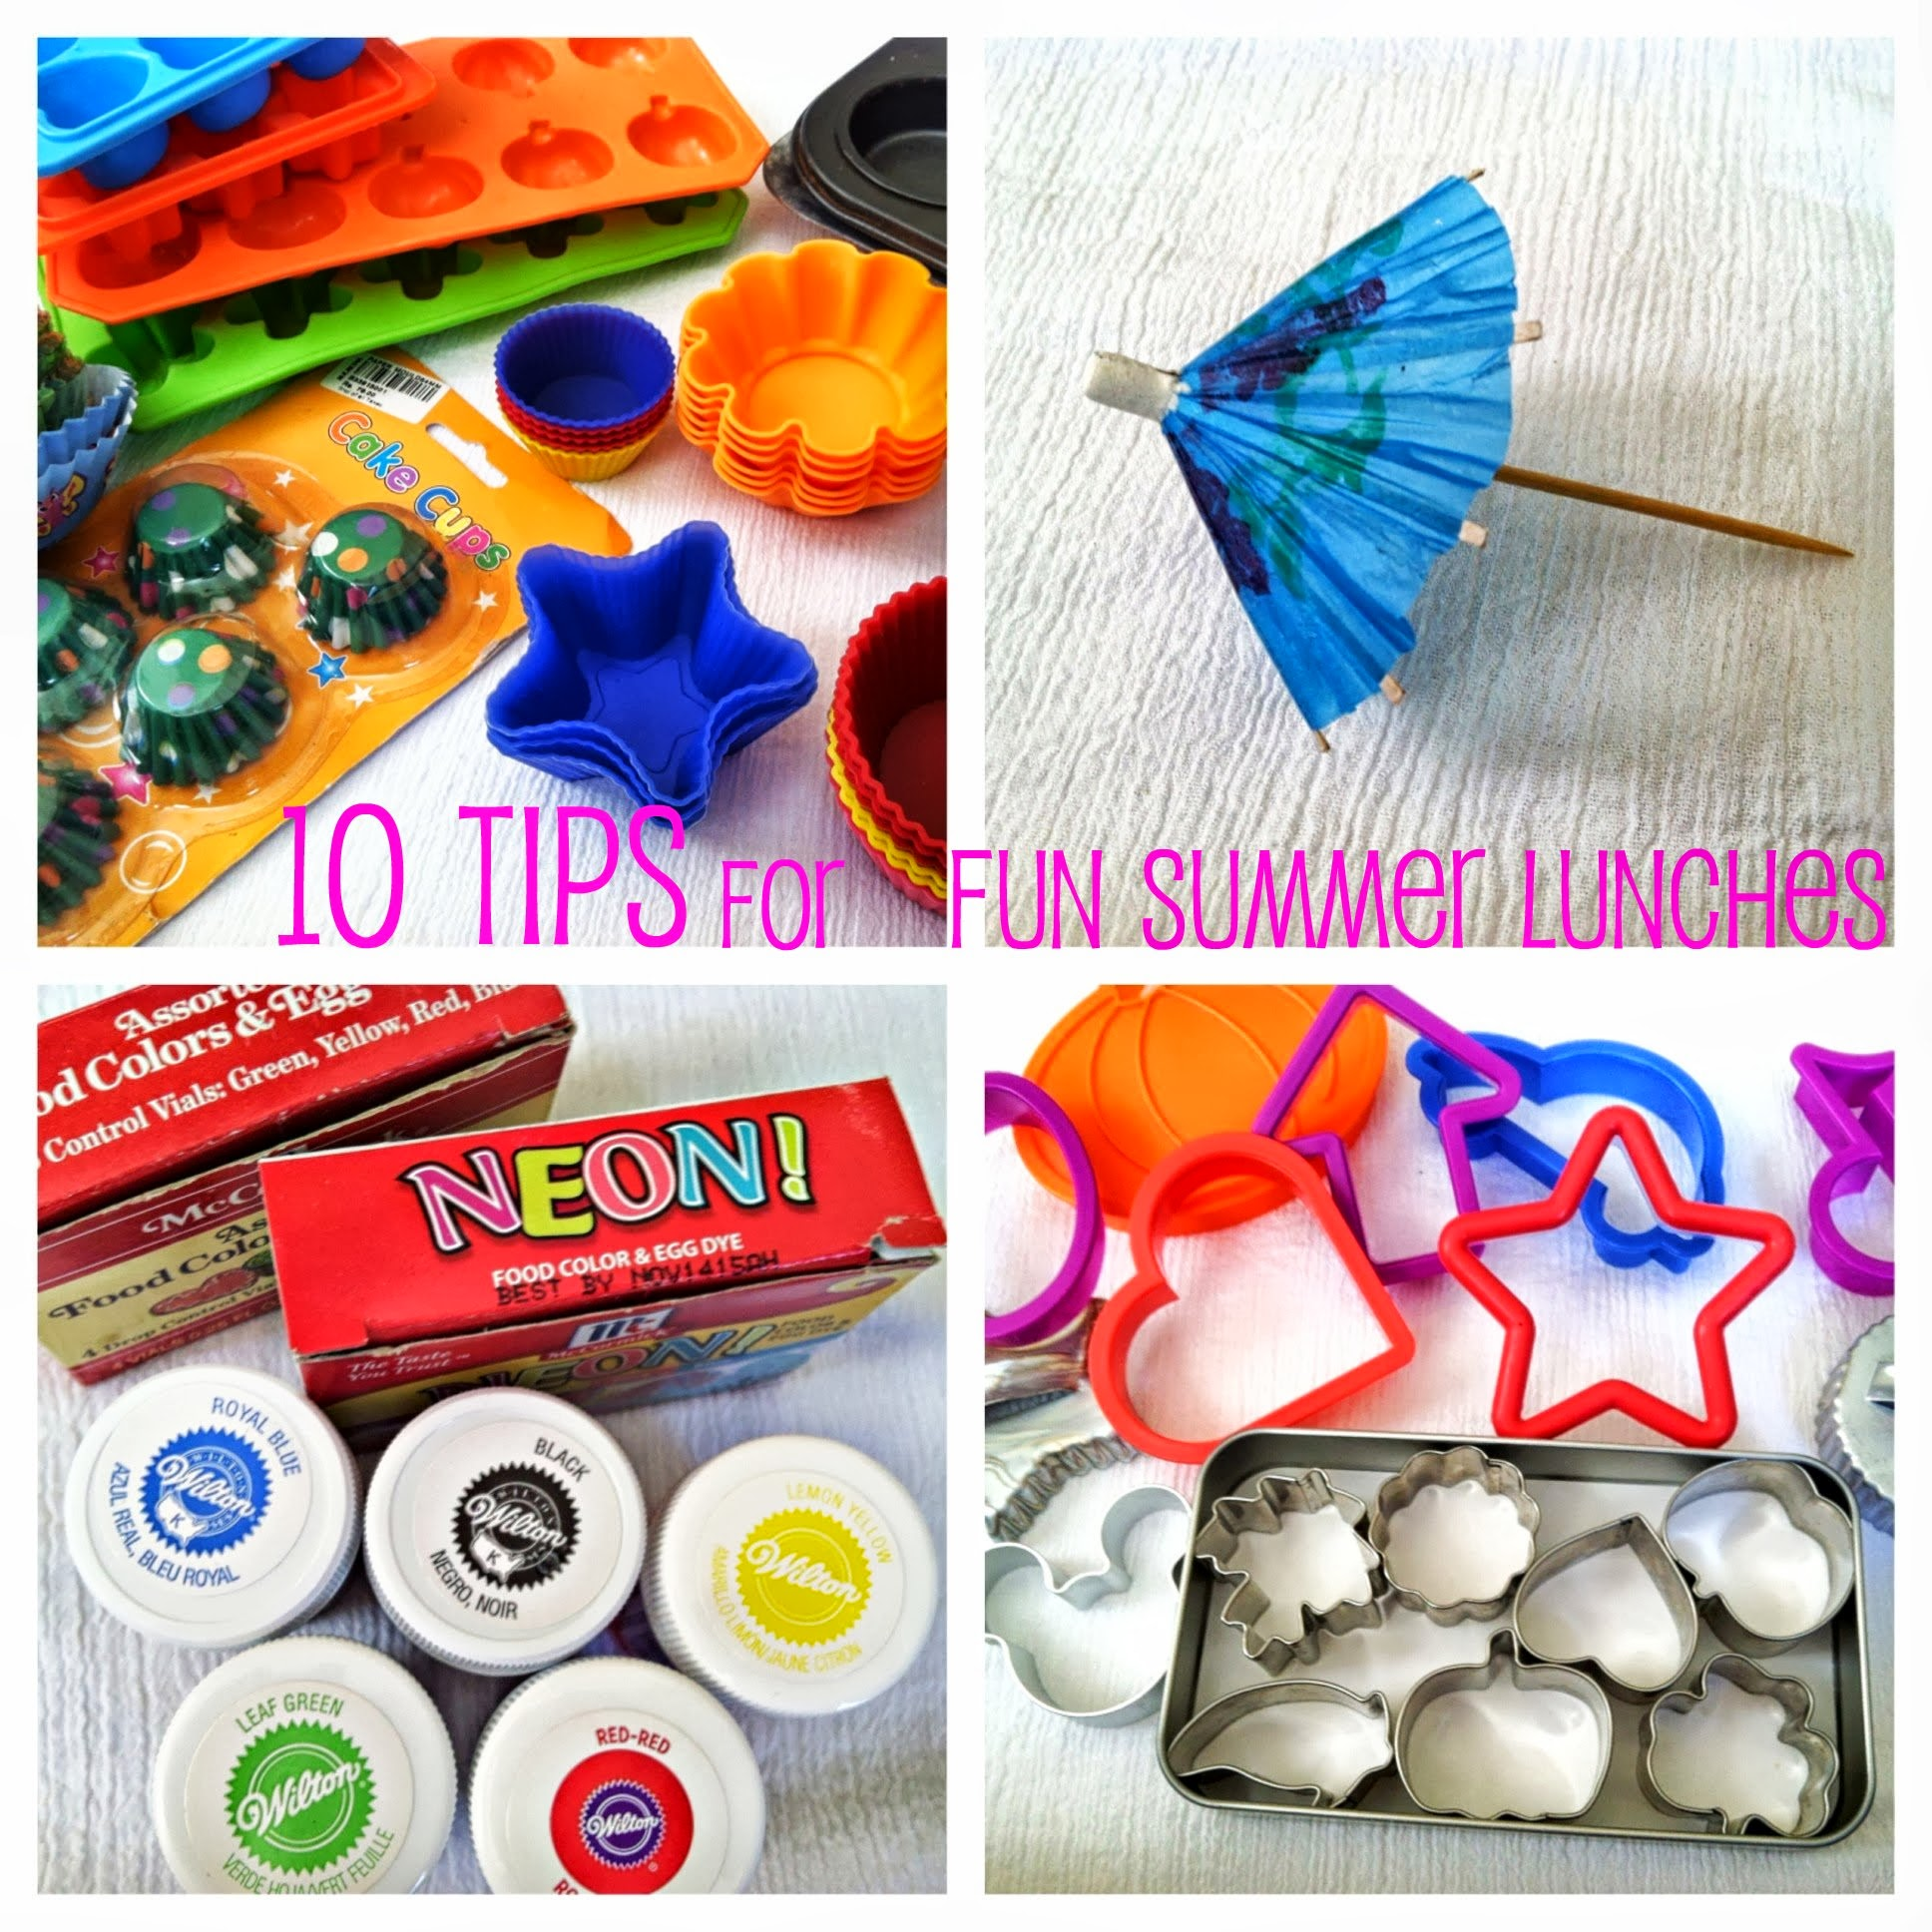 10 Tips for Fun Summer Lunches